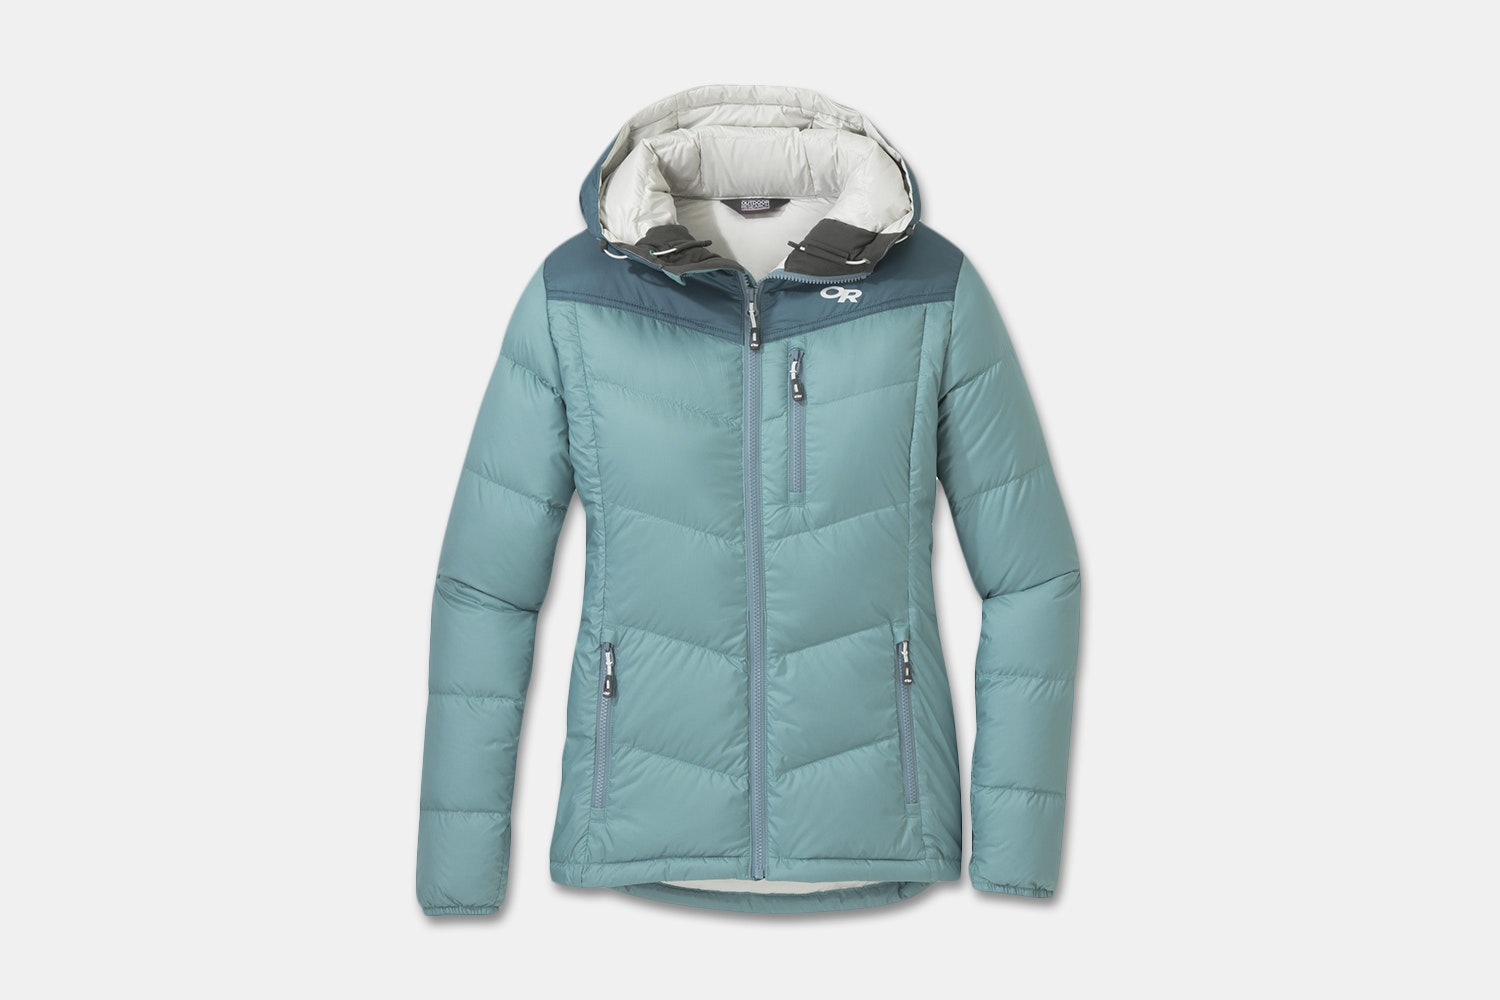 Women's – Hoody – Seaglass/Washed Peacock (+$20)